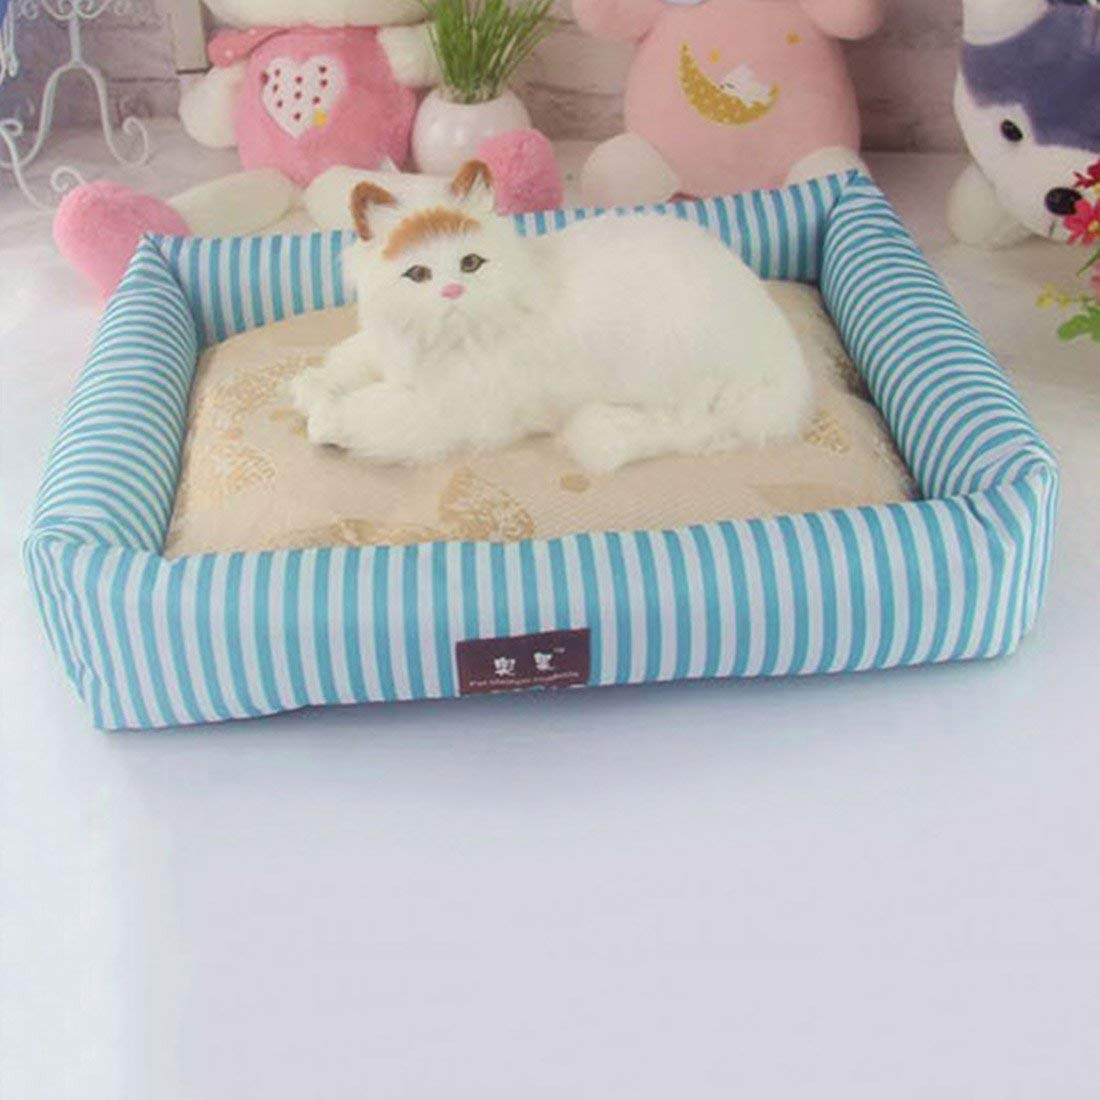 IANXI Home Summer Dog Bed Pet Cooling Sleeping Mat Cat Bed Cushion bluee L for Cat Dog